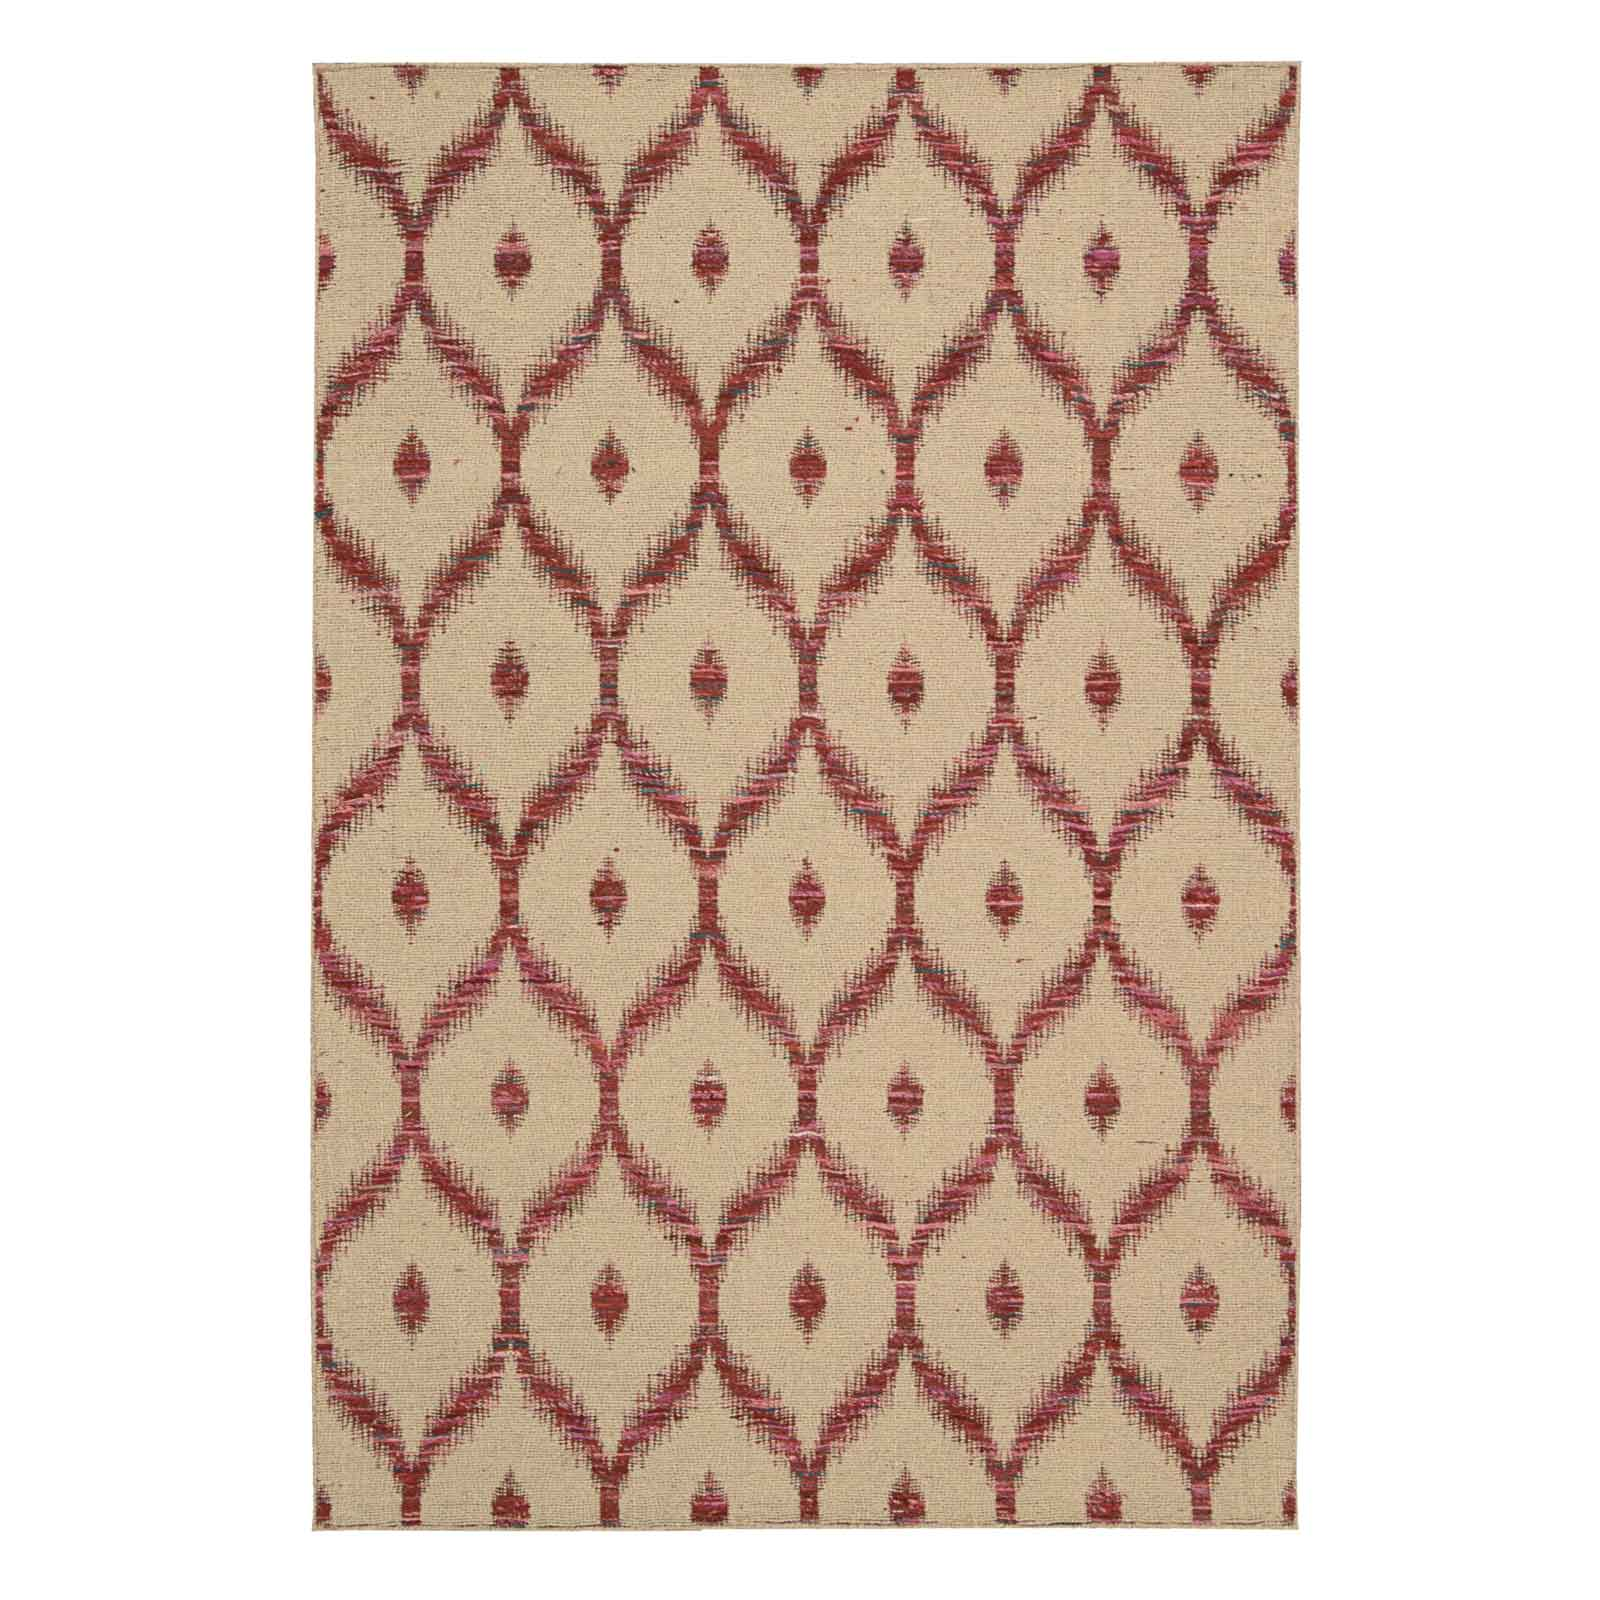 Spectrum Rugs SPE02 in Beige and Burgundy